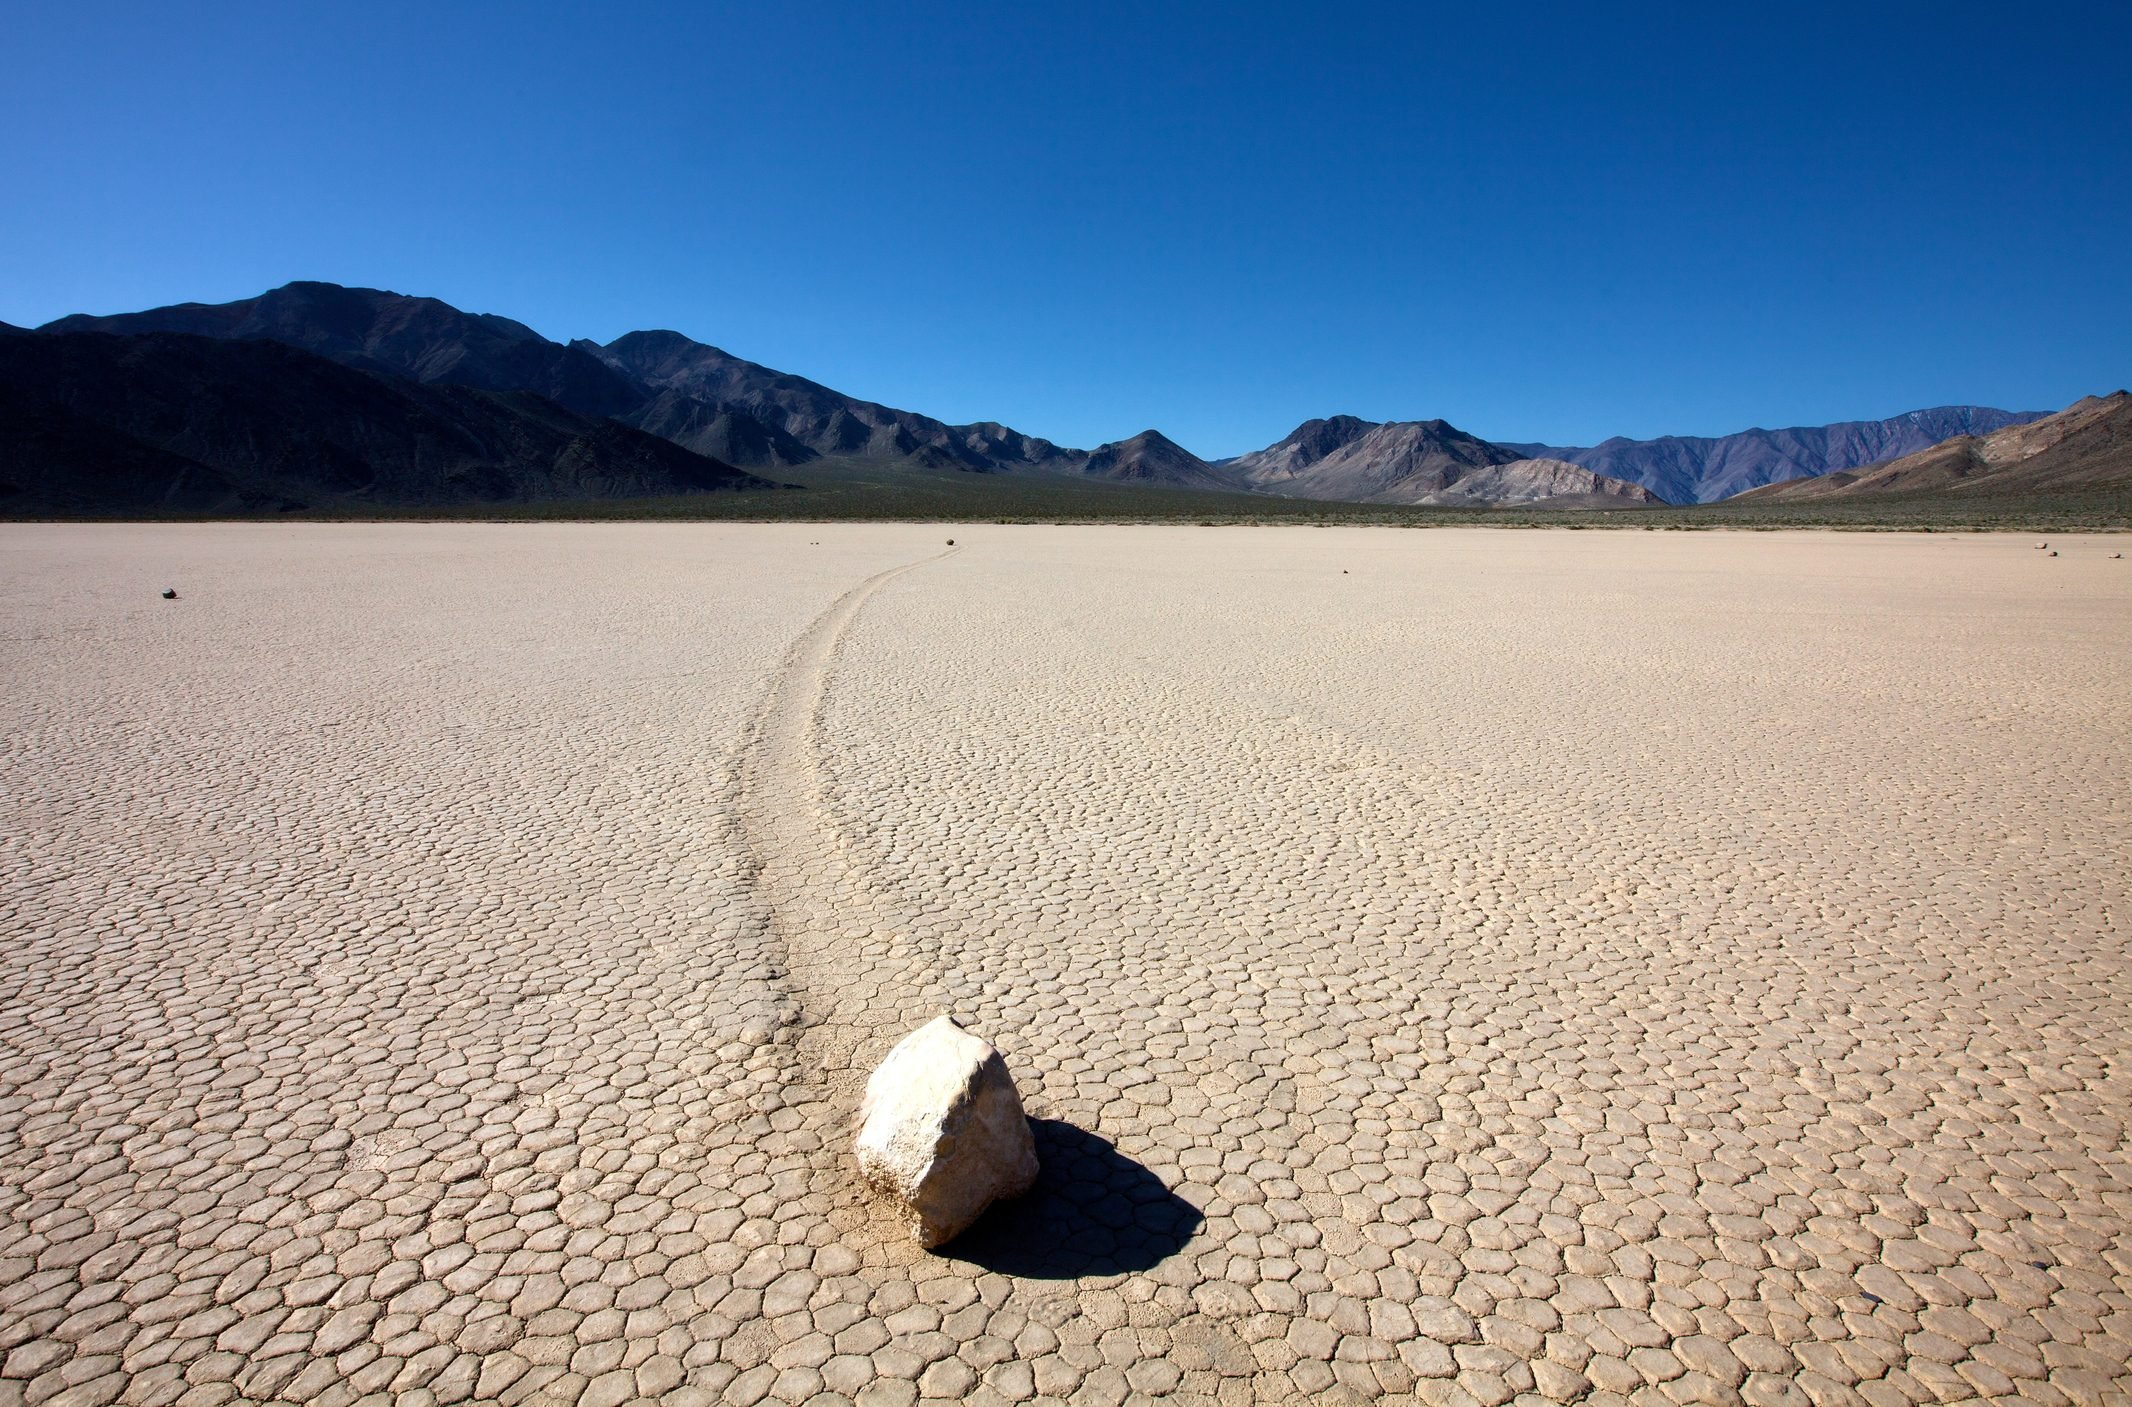 Rock and track in Racetrack Playa, Death Valley National Park, California, USA